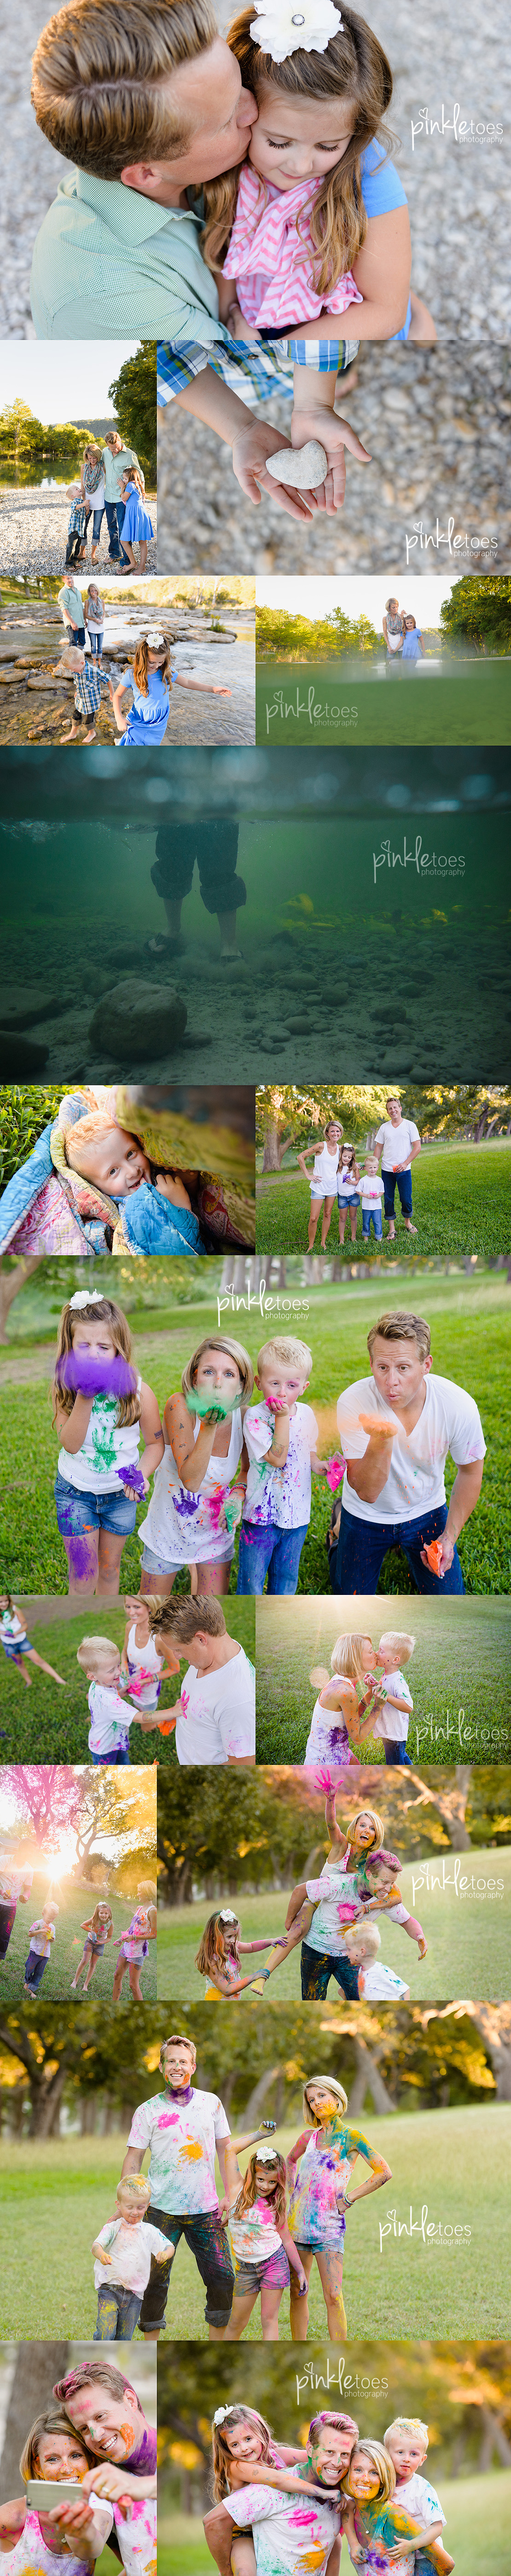 austin-family-underwater-creek-photo-session-color-powder-colorful-family-fun-photography